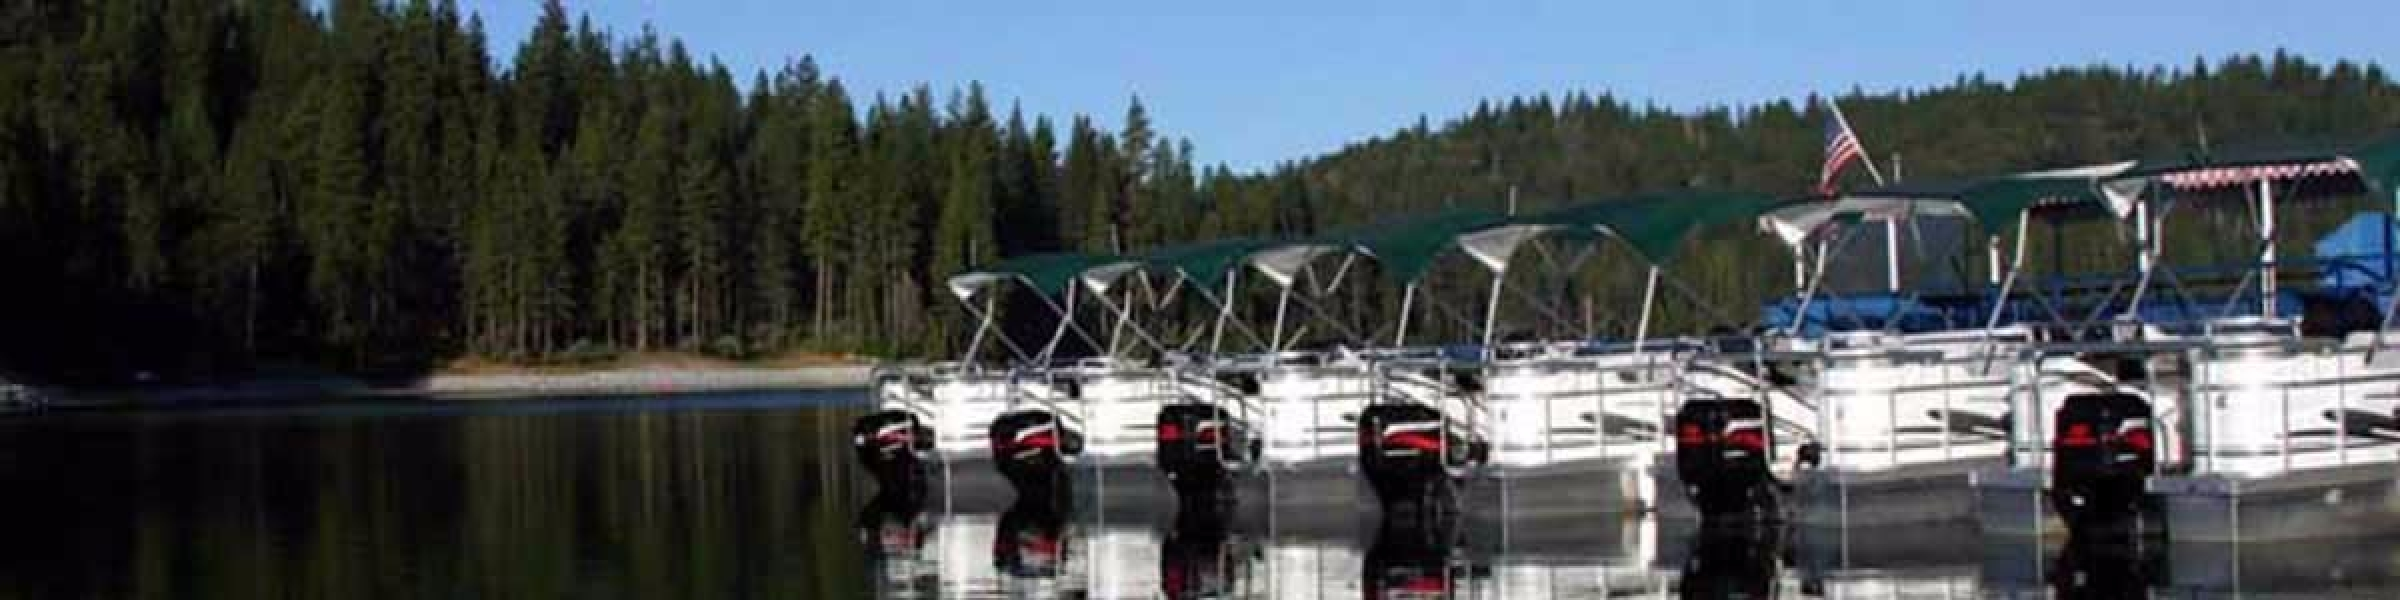 2015-parked-patio-boats-bass-lake-marina-slider